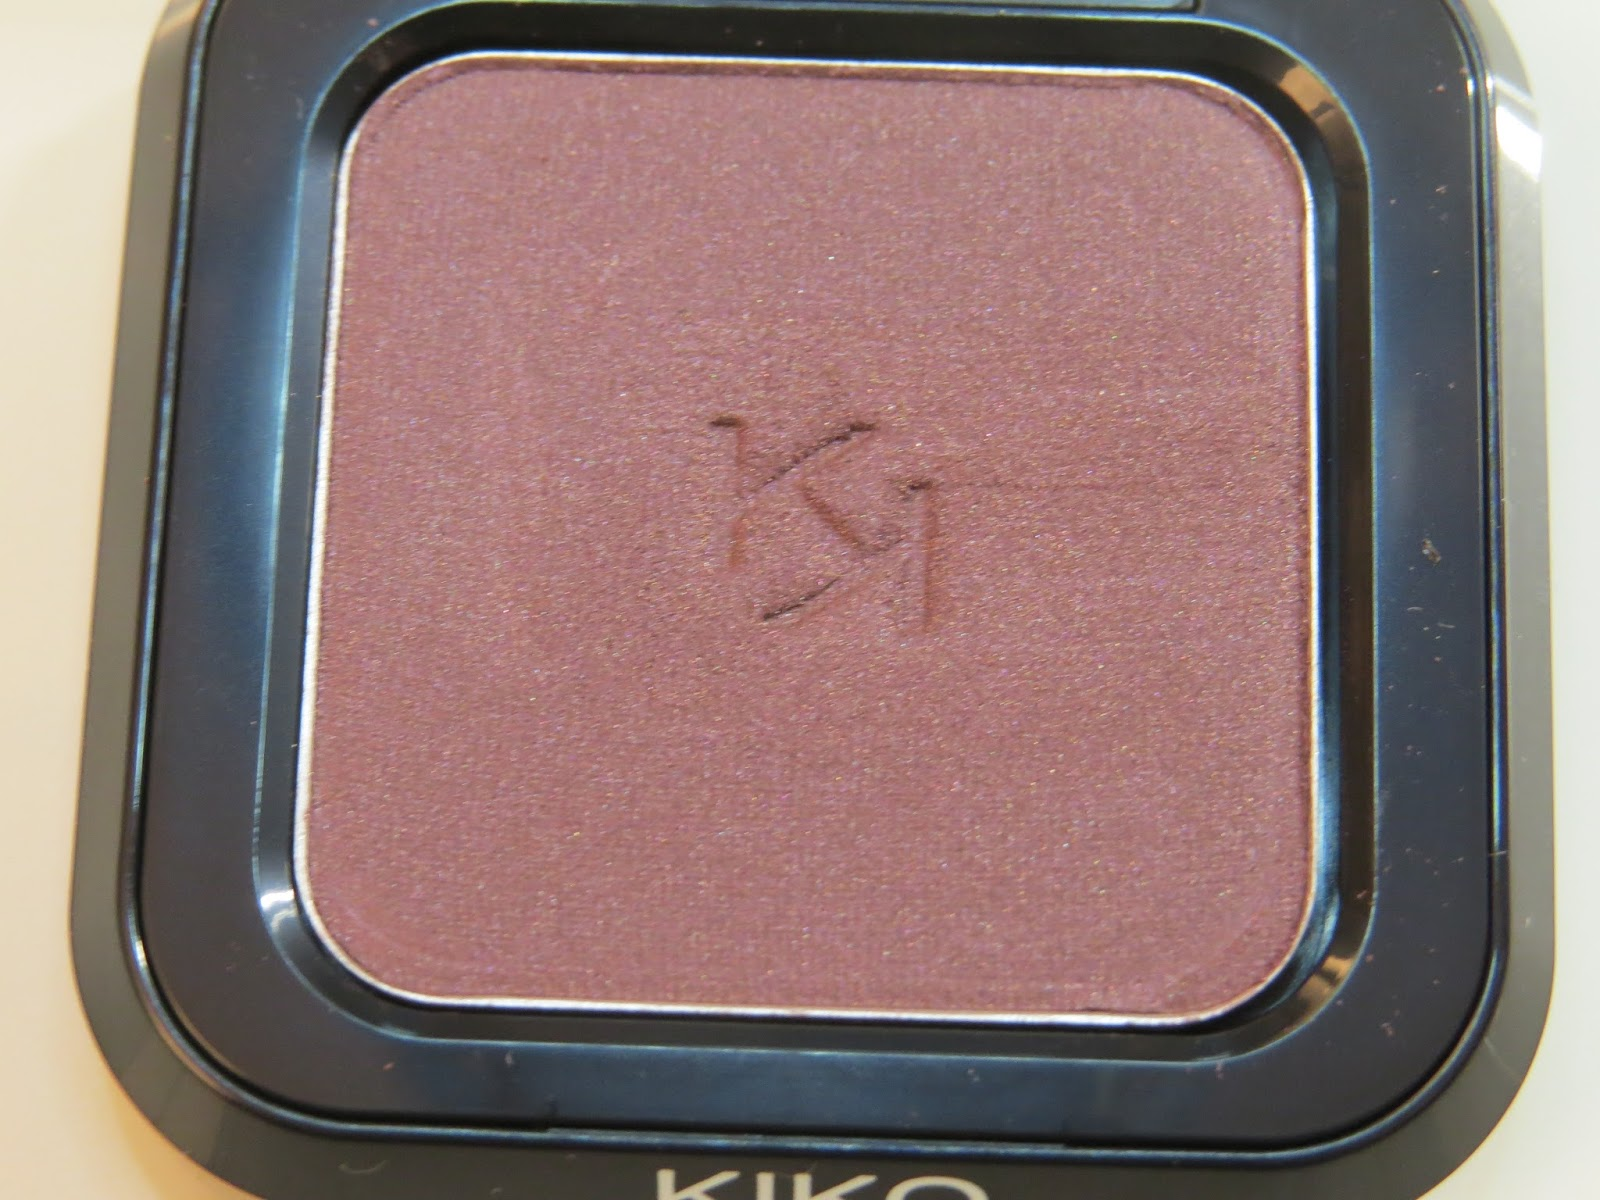 High Pigment Wet And Dry Eyeshadow by Kiko Milano #21